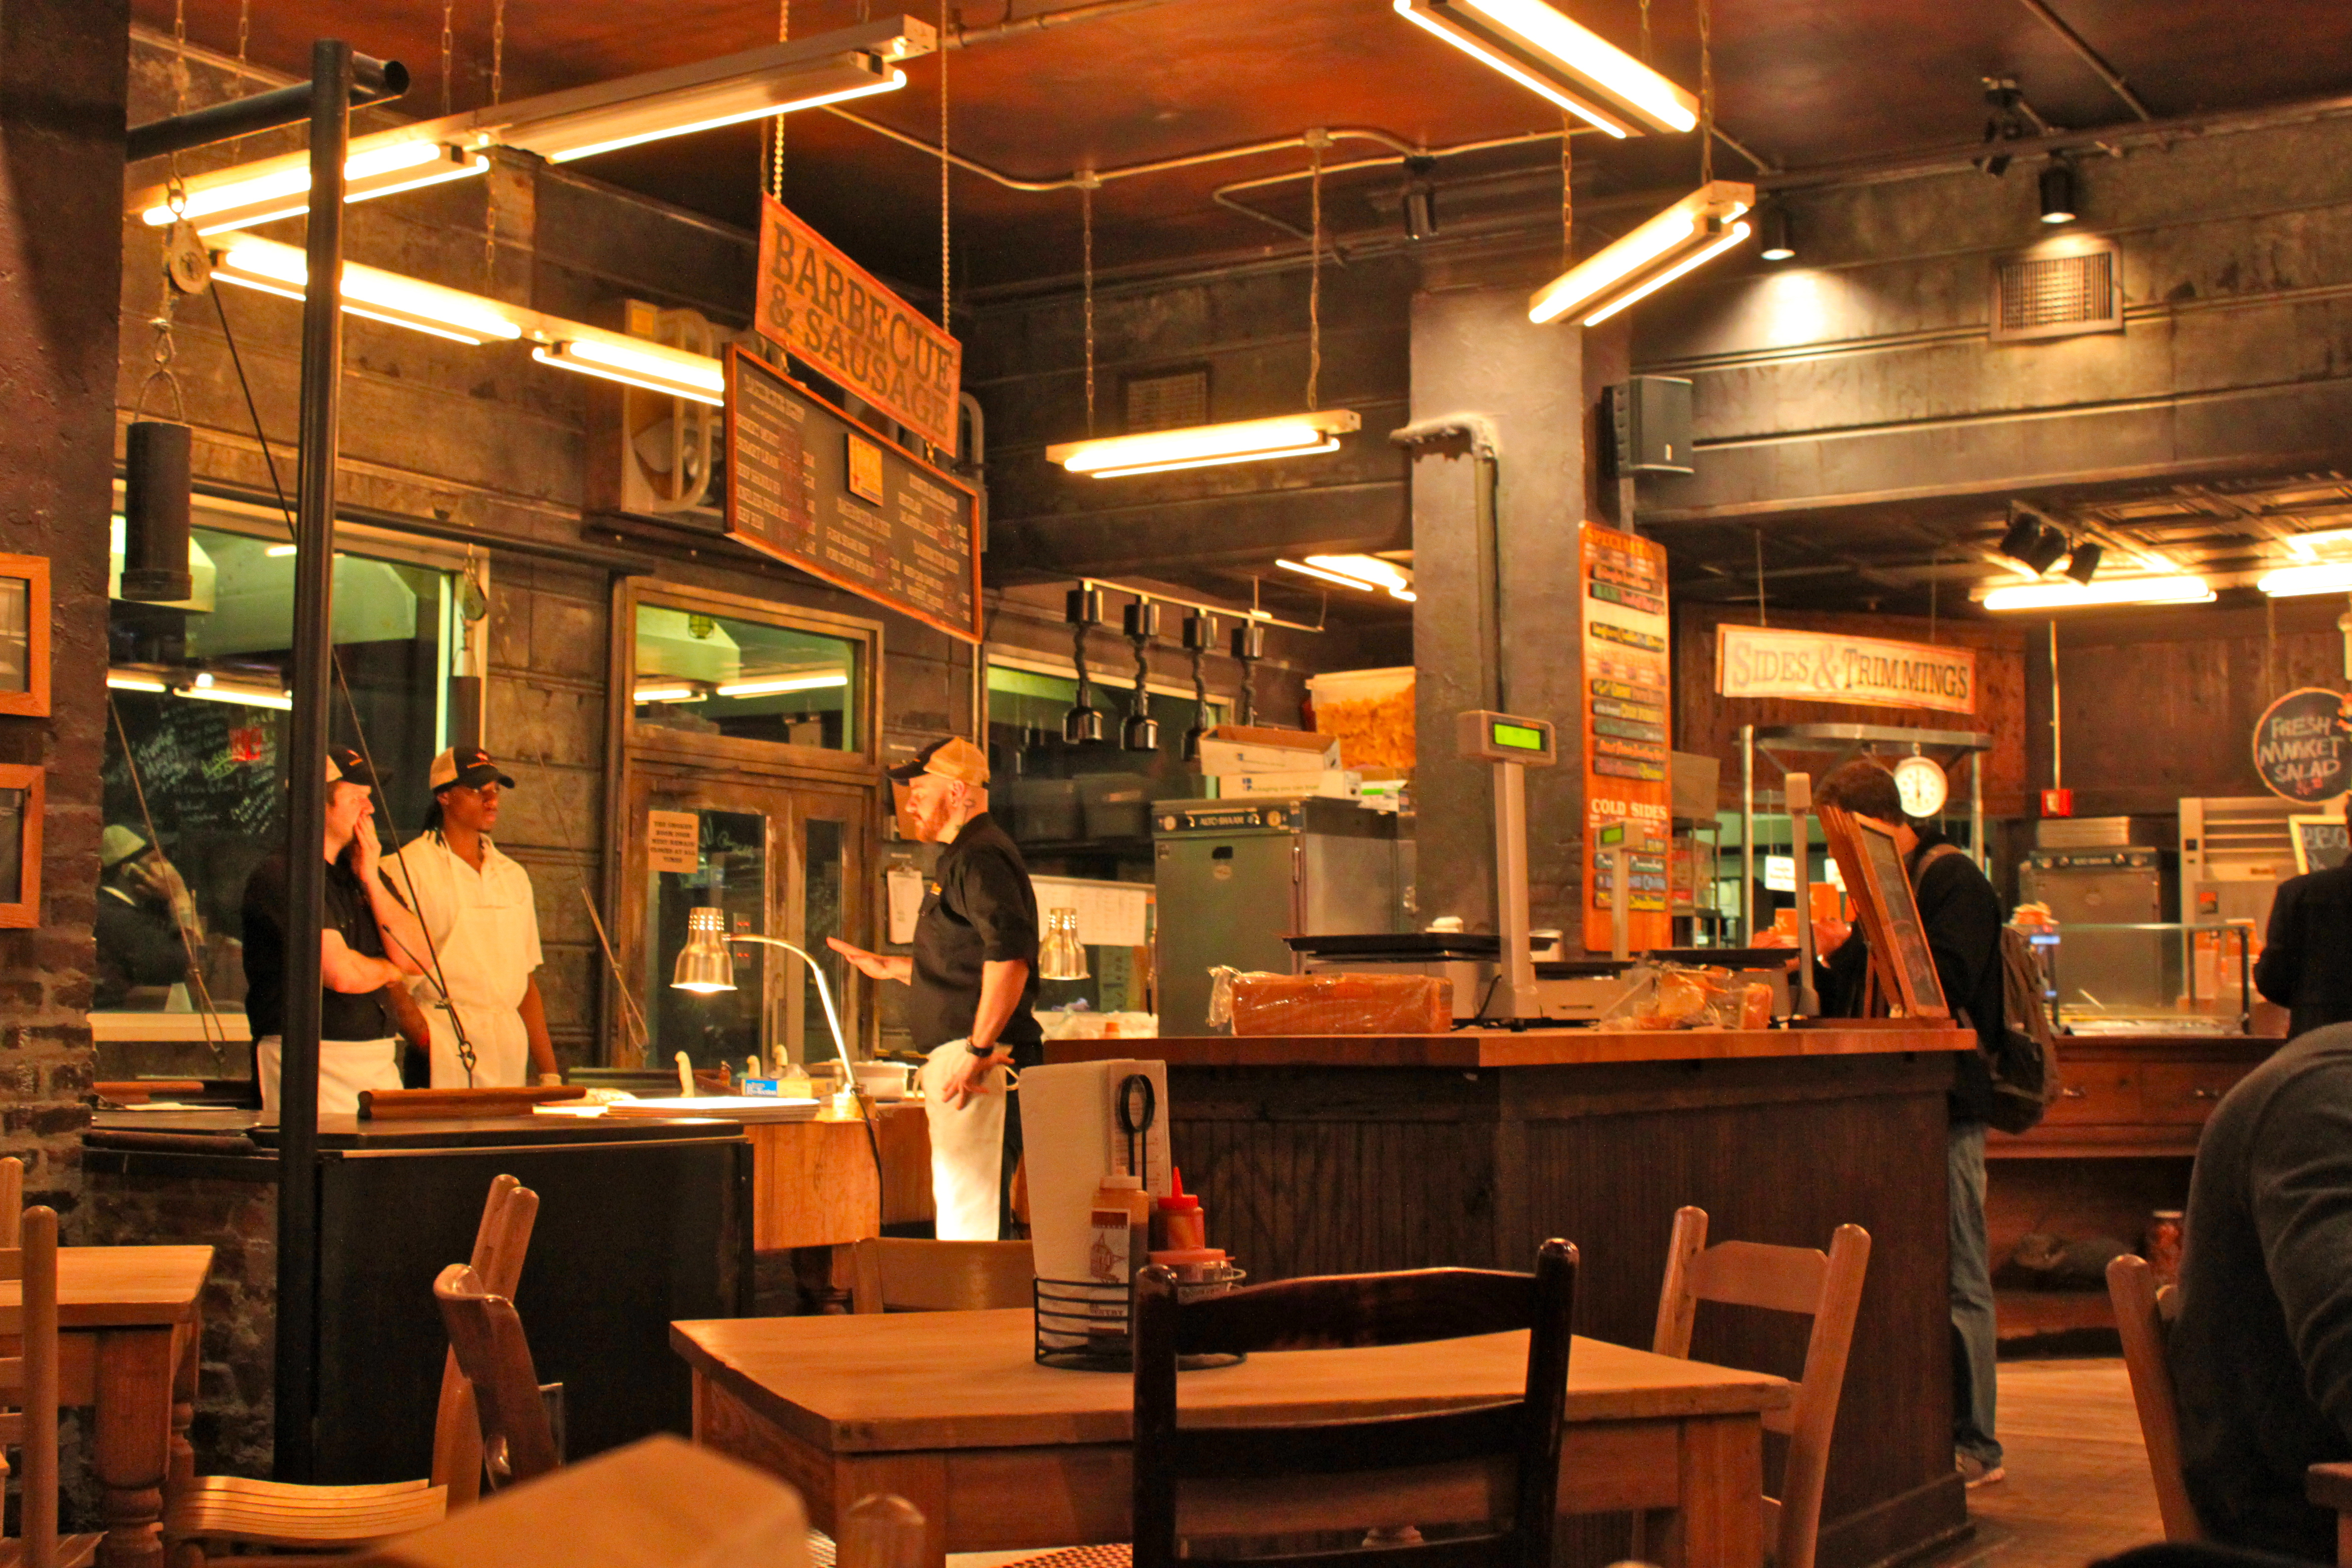 Go to Hill Country Barbecue for the best barbecued meats around New York City.